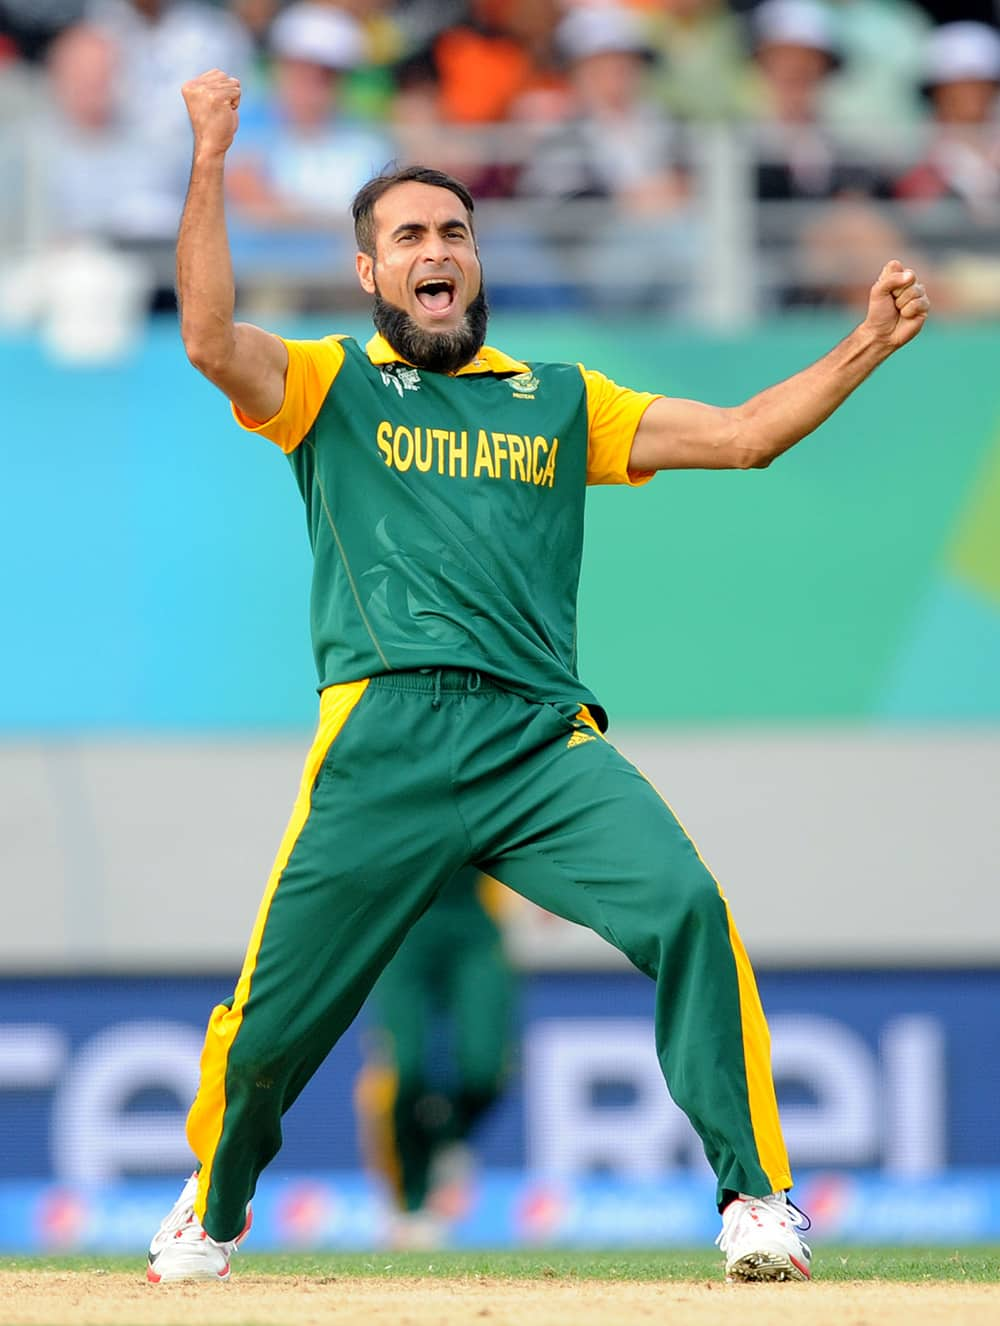 South African bowler Imran Tahir celebrates after taking the wicket of Pakistan batsman Wahab Riaz during their Cricket World Cup Pool B match in Auckland, New Zealand.